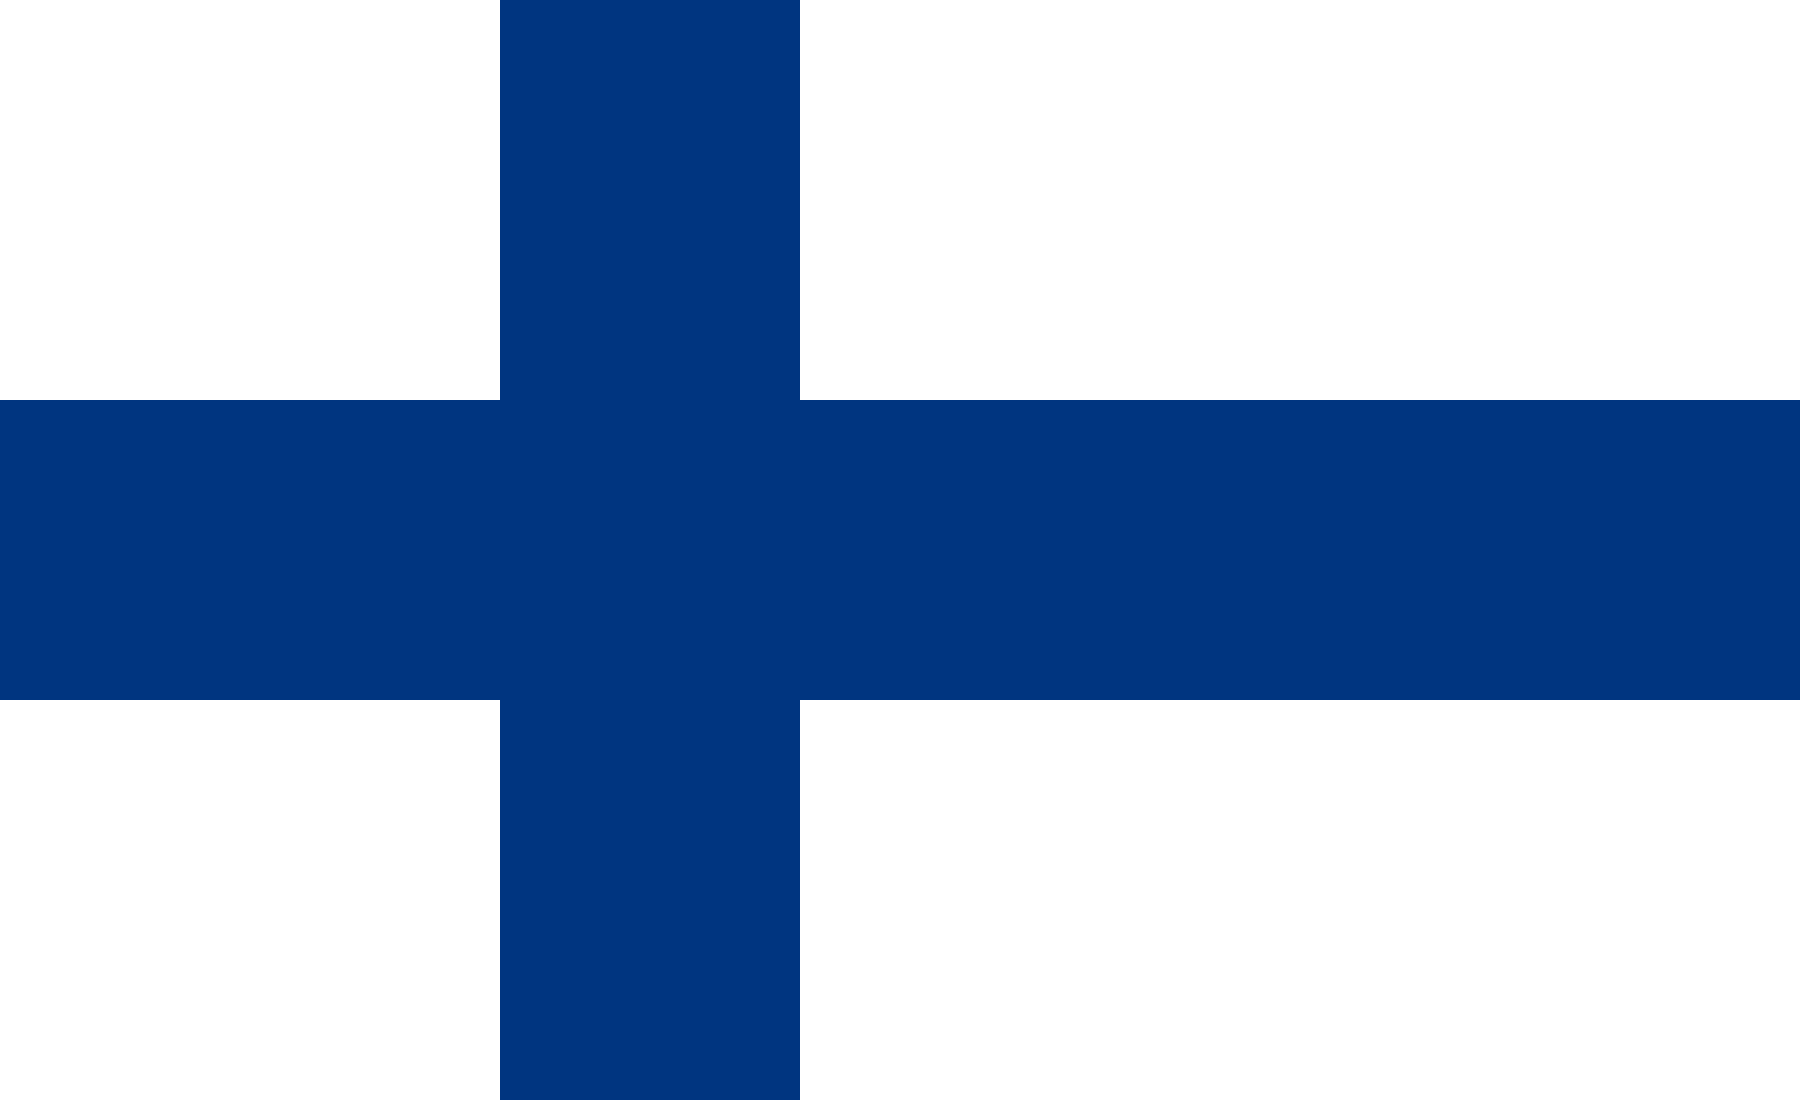 Flag of The Republic of Finland